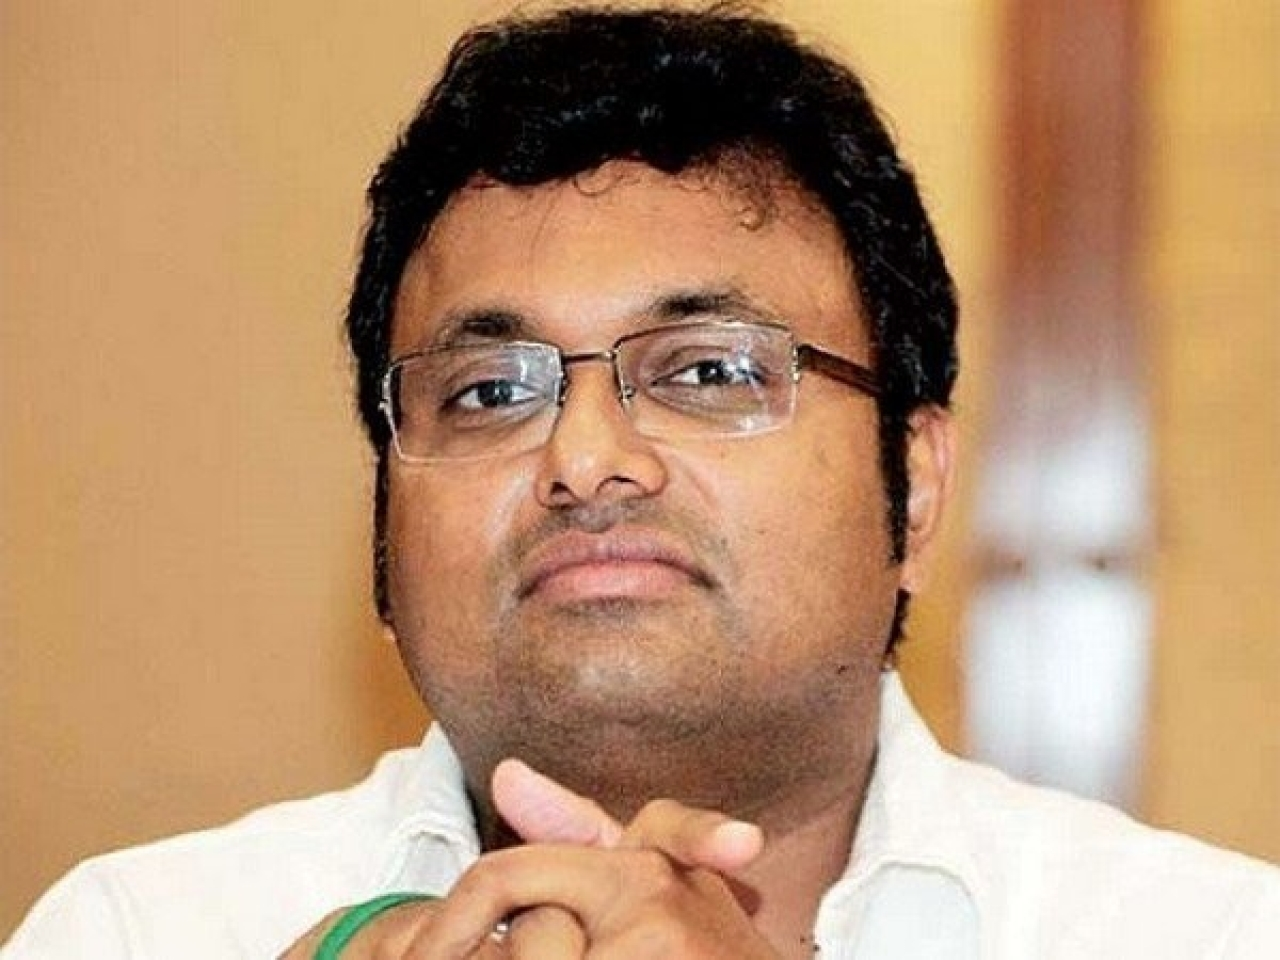 Karti Chidambaram Bought Tennis Club In Spain, Cottages In UK, Several Properties From Proceeds Of INX Media Scam: ED